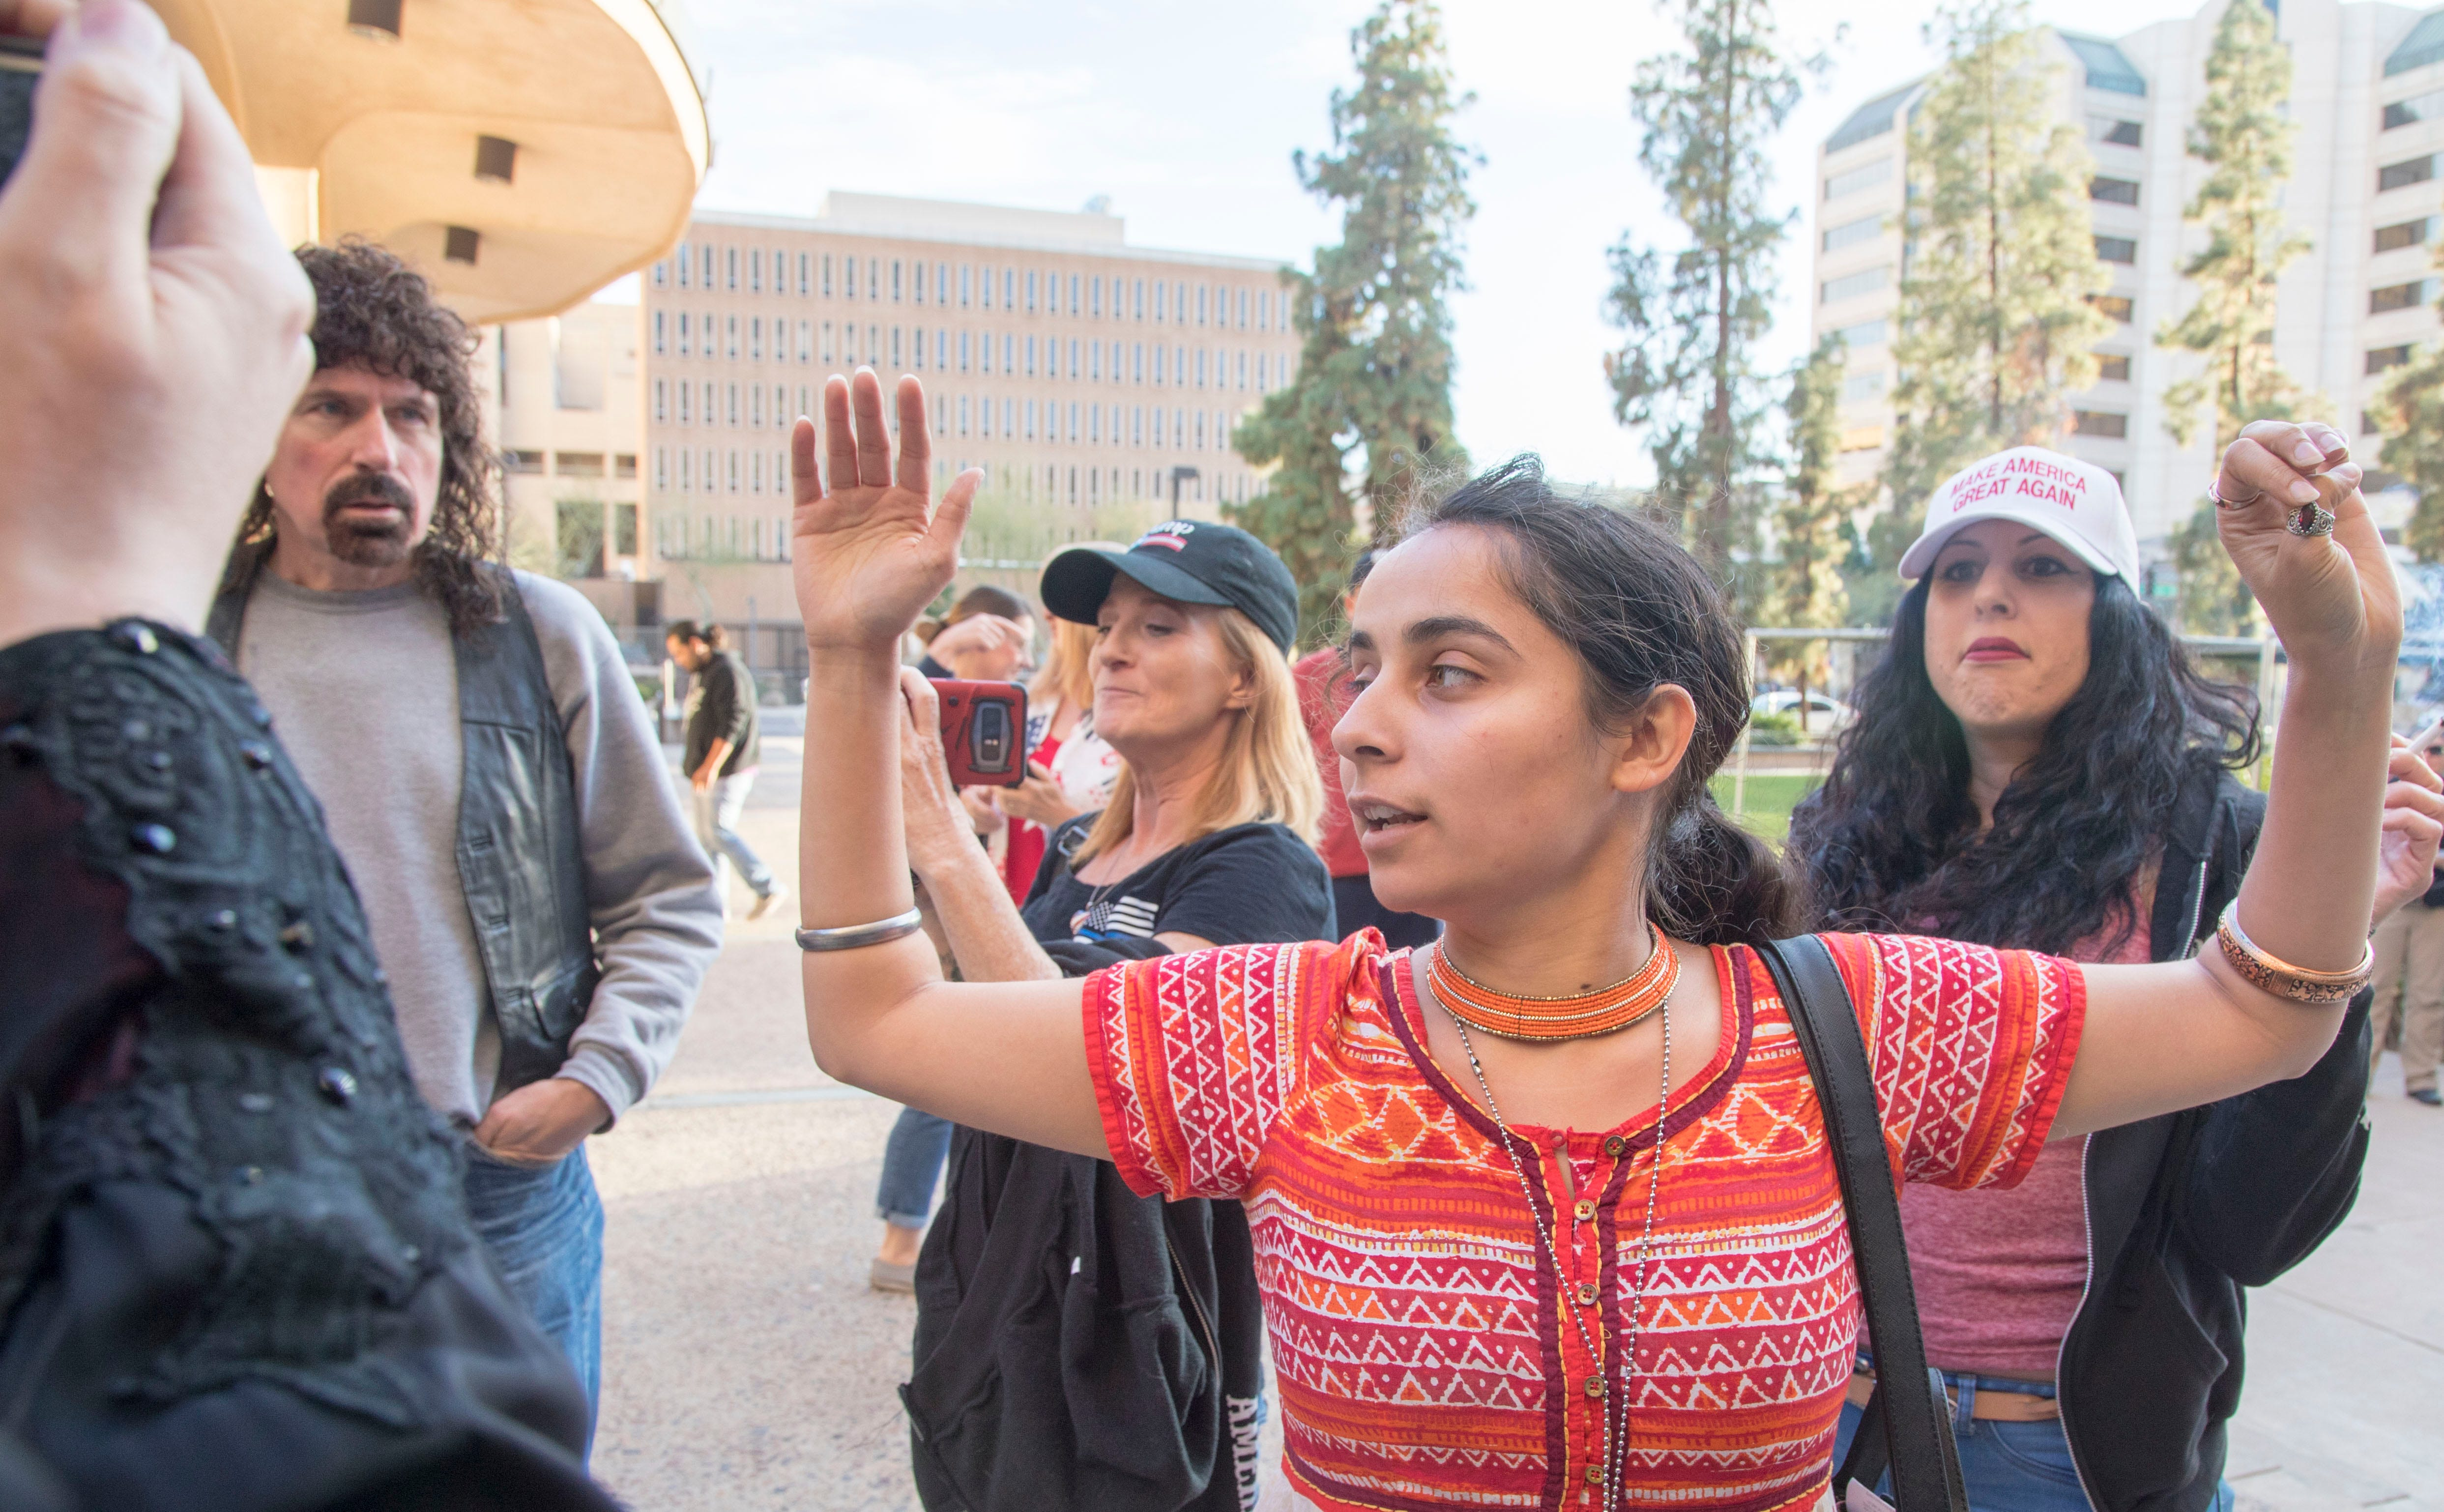 Trump supporters, including Jennifer Harrison (right), and members of Puente Arizona argue outside the Phoenix City Hall on Feb. 21, 2018.